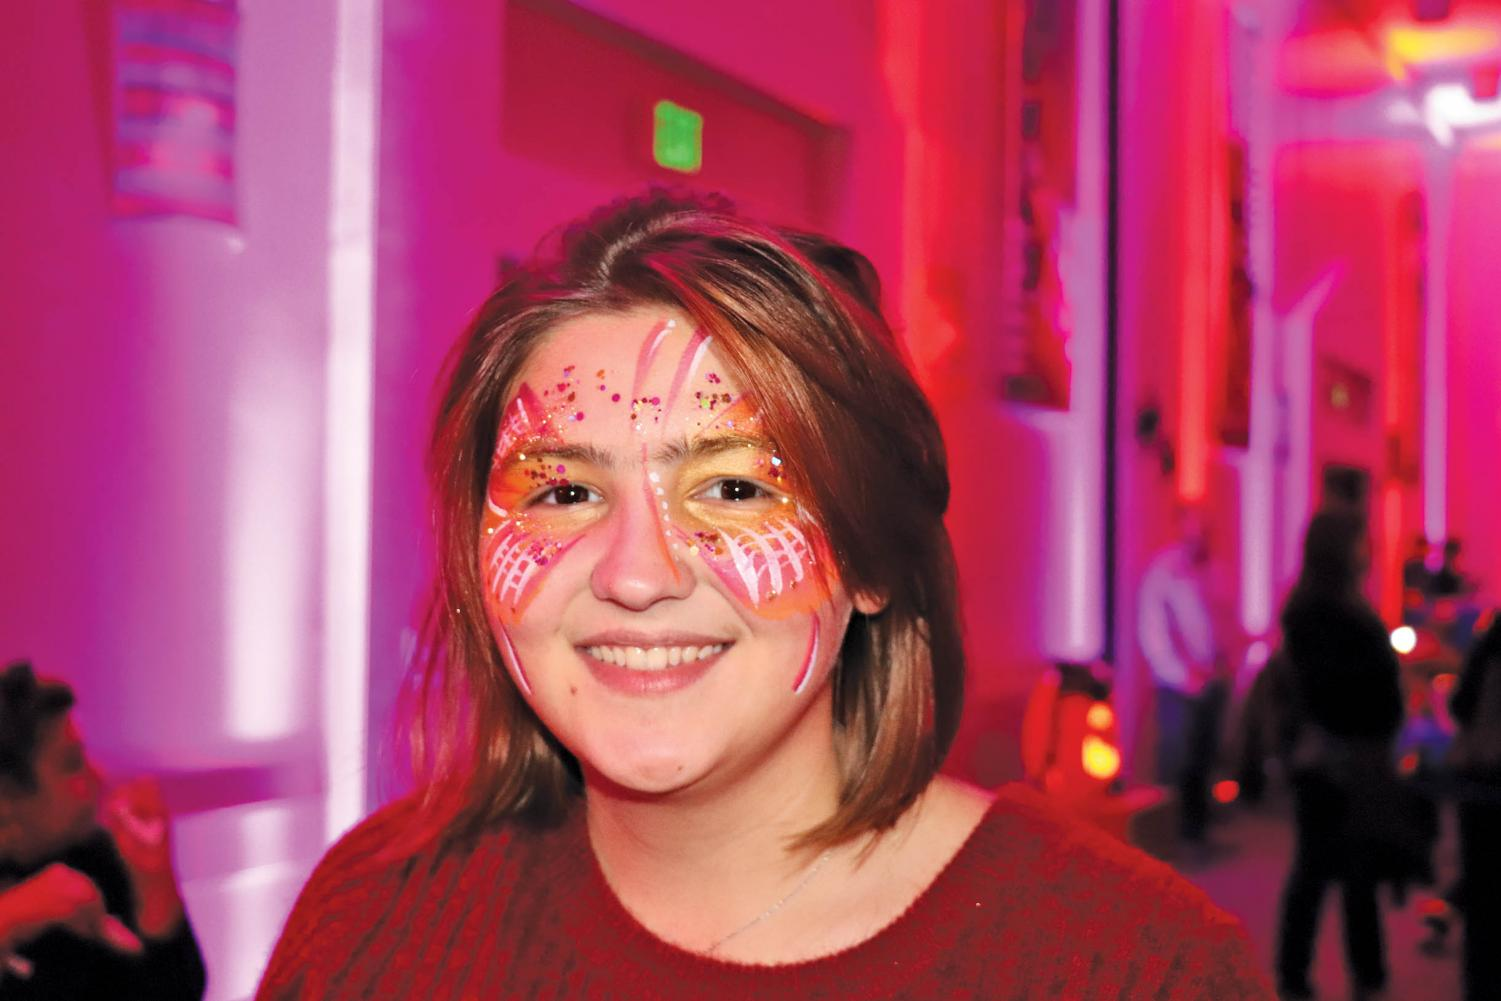 Hailey Beuhler shows off her face paint that she got at the event. Halloscream offered other festive activities including magic wand building, cape making and cookie decorating to help get visitors into the holiday mood.